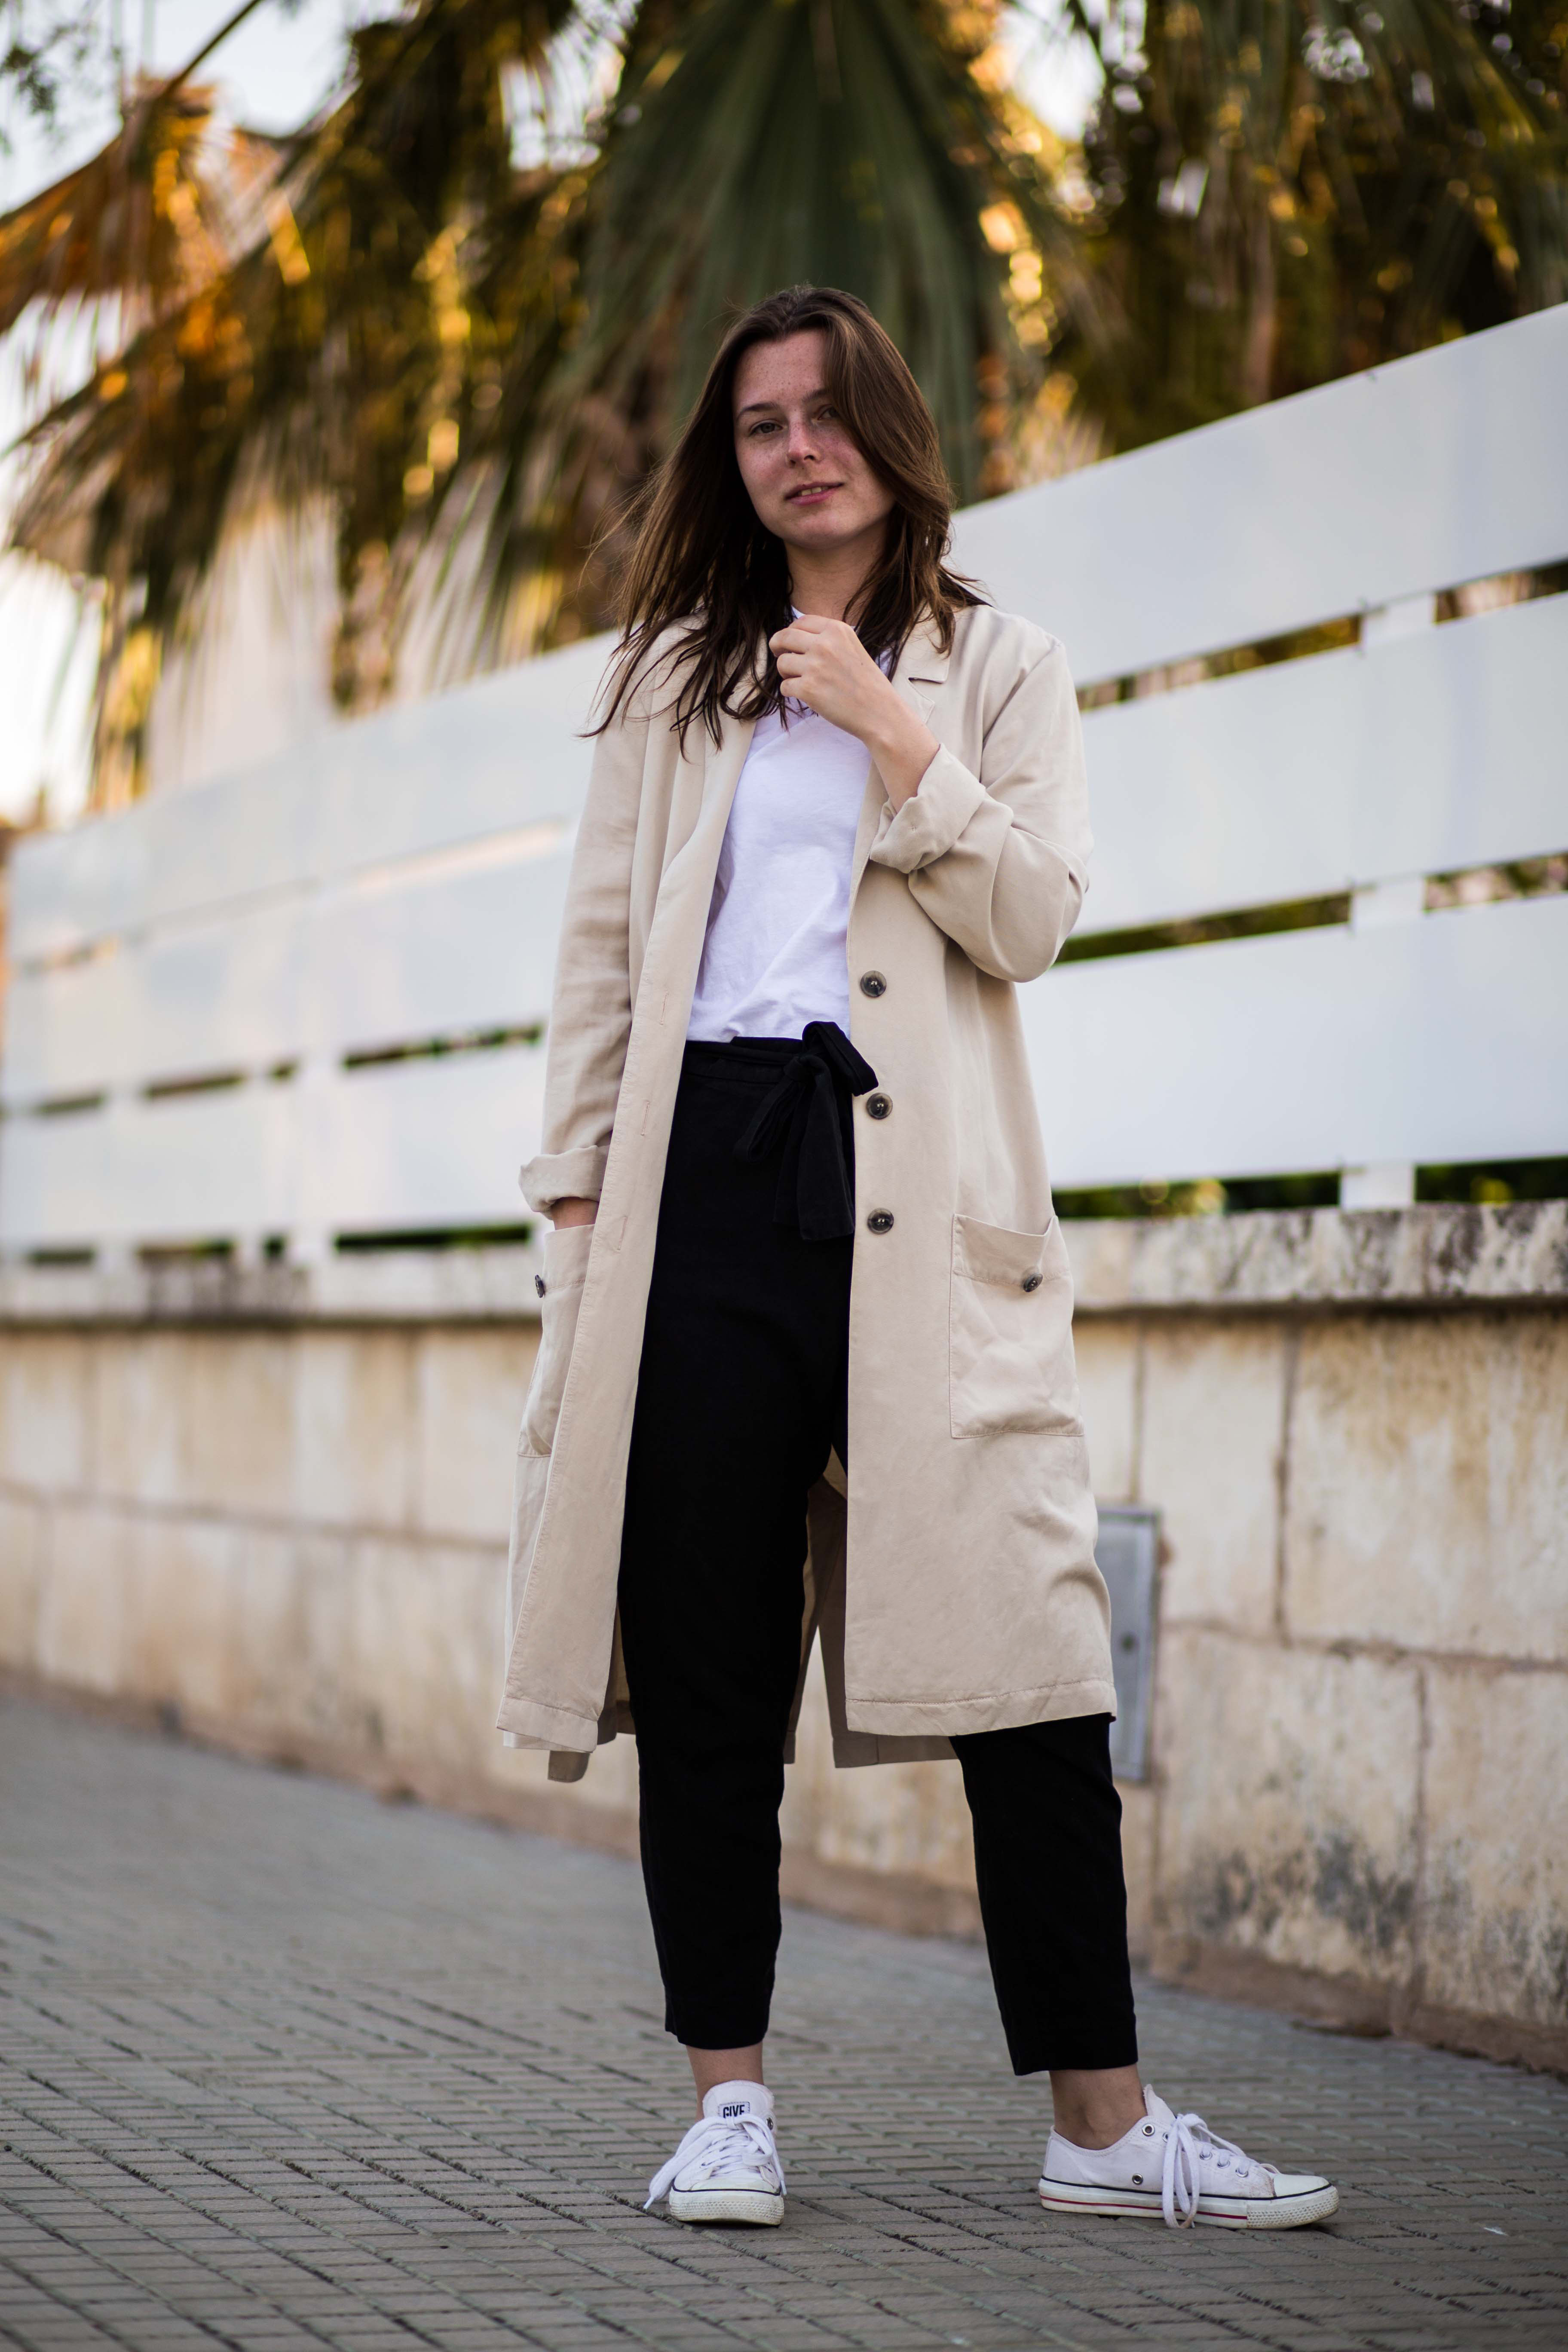 Fair Fashion Trenchcoat